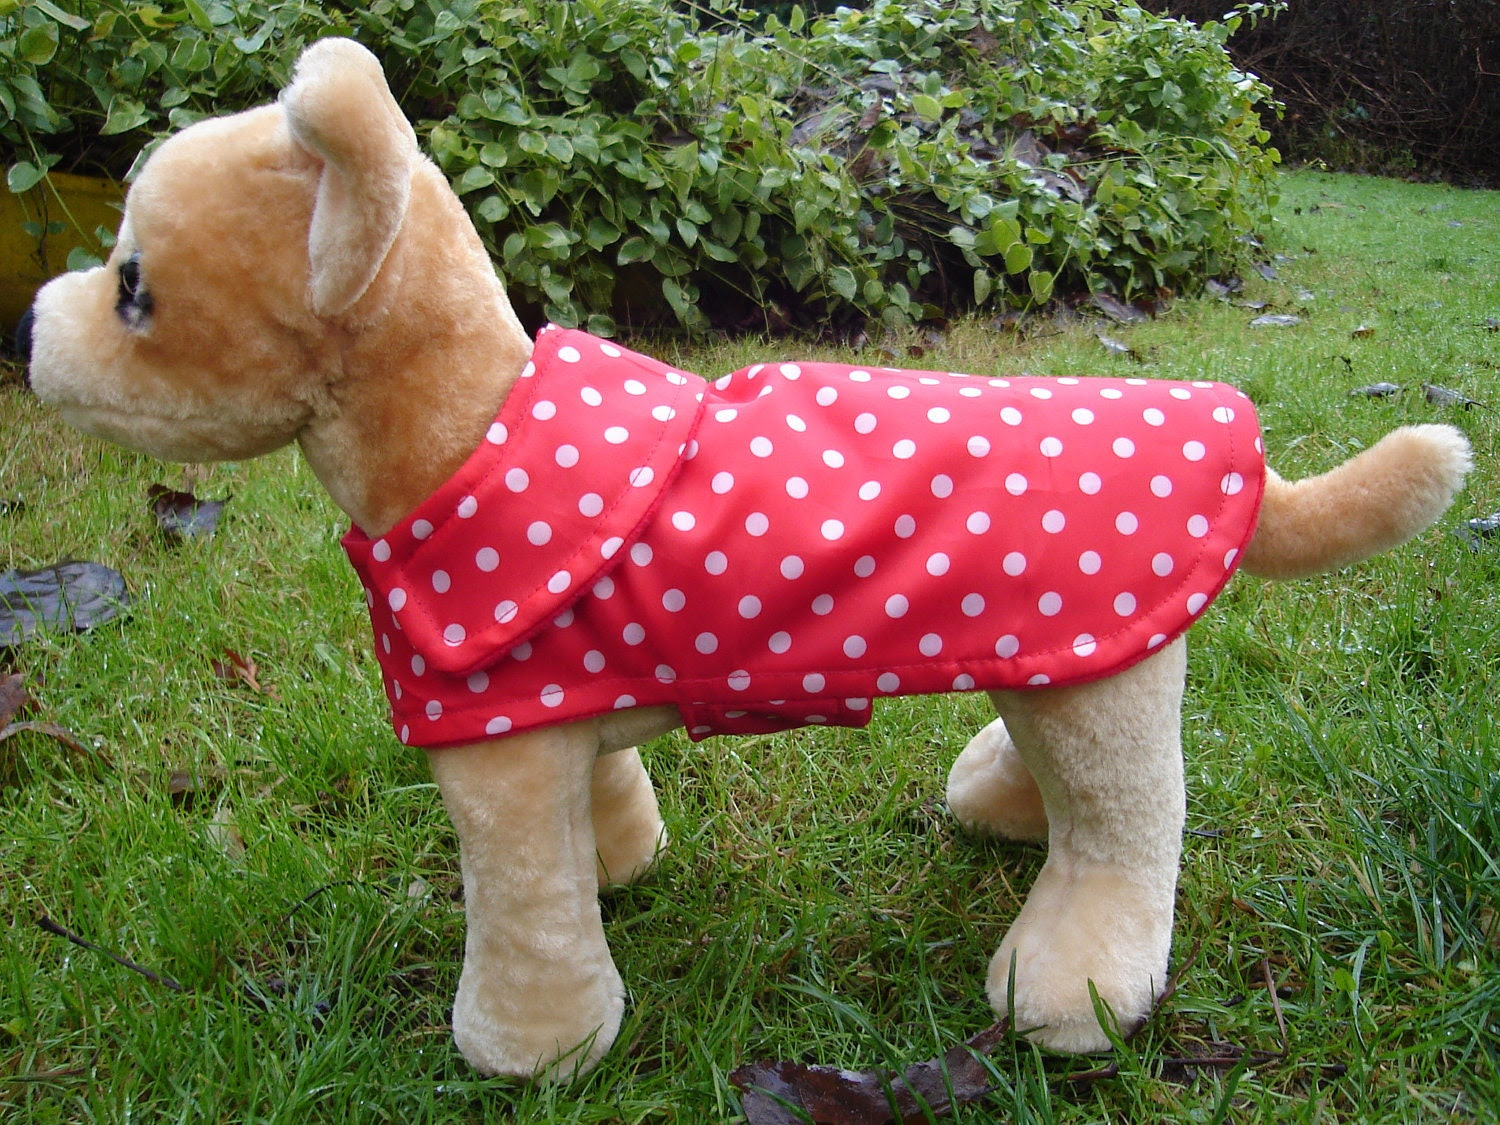 Dog Coat - Red and White Polka Dot Raincoat- Size XX Small- 8 to 10 Inch Back Length - Or Custom Size